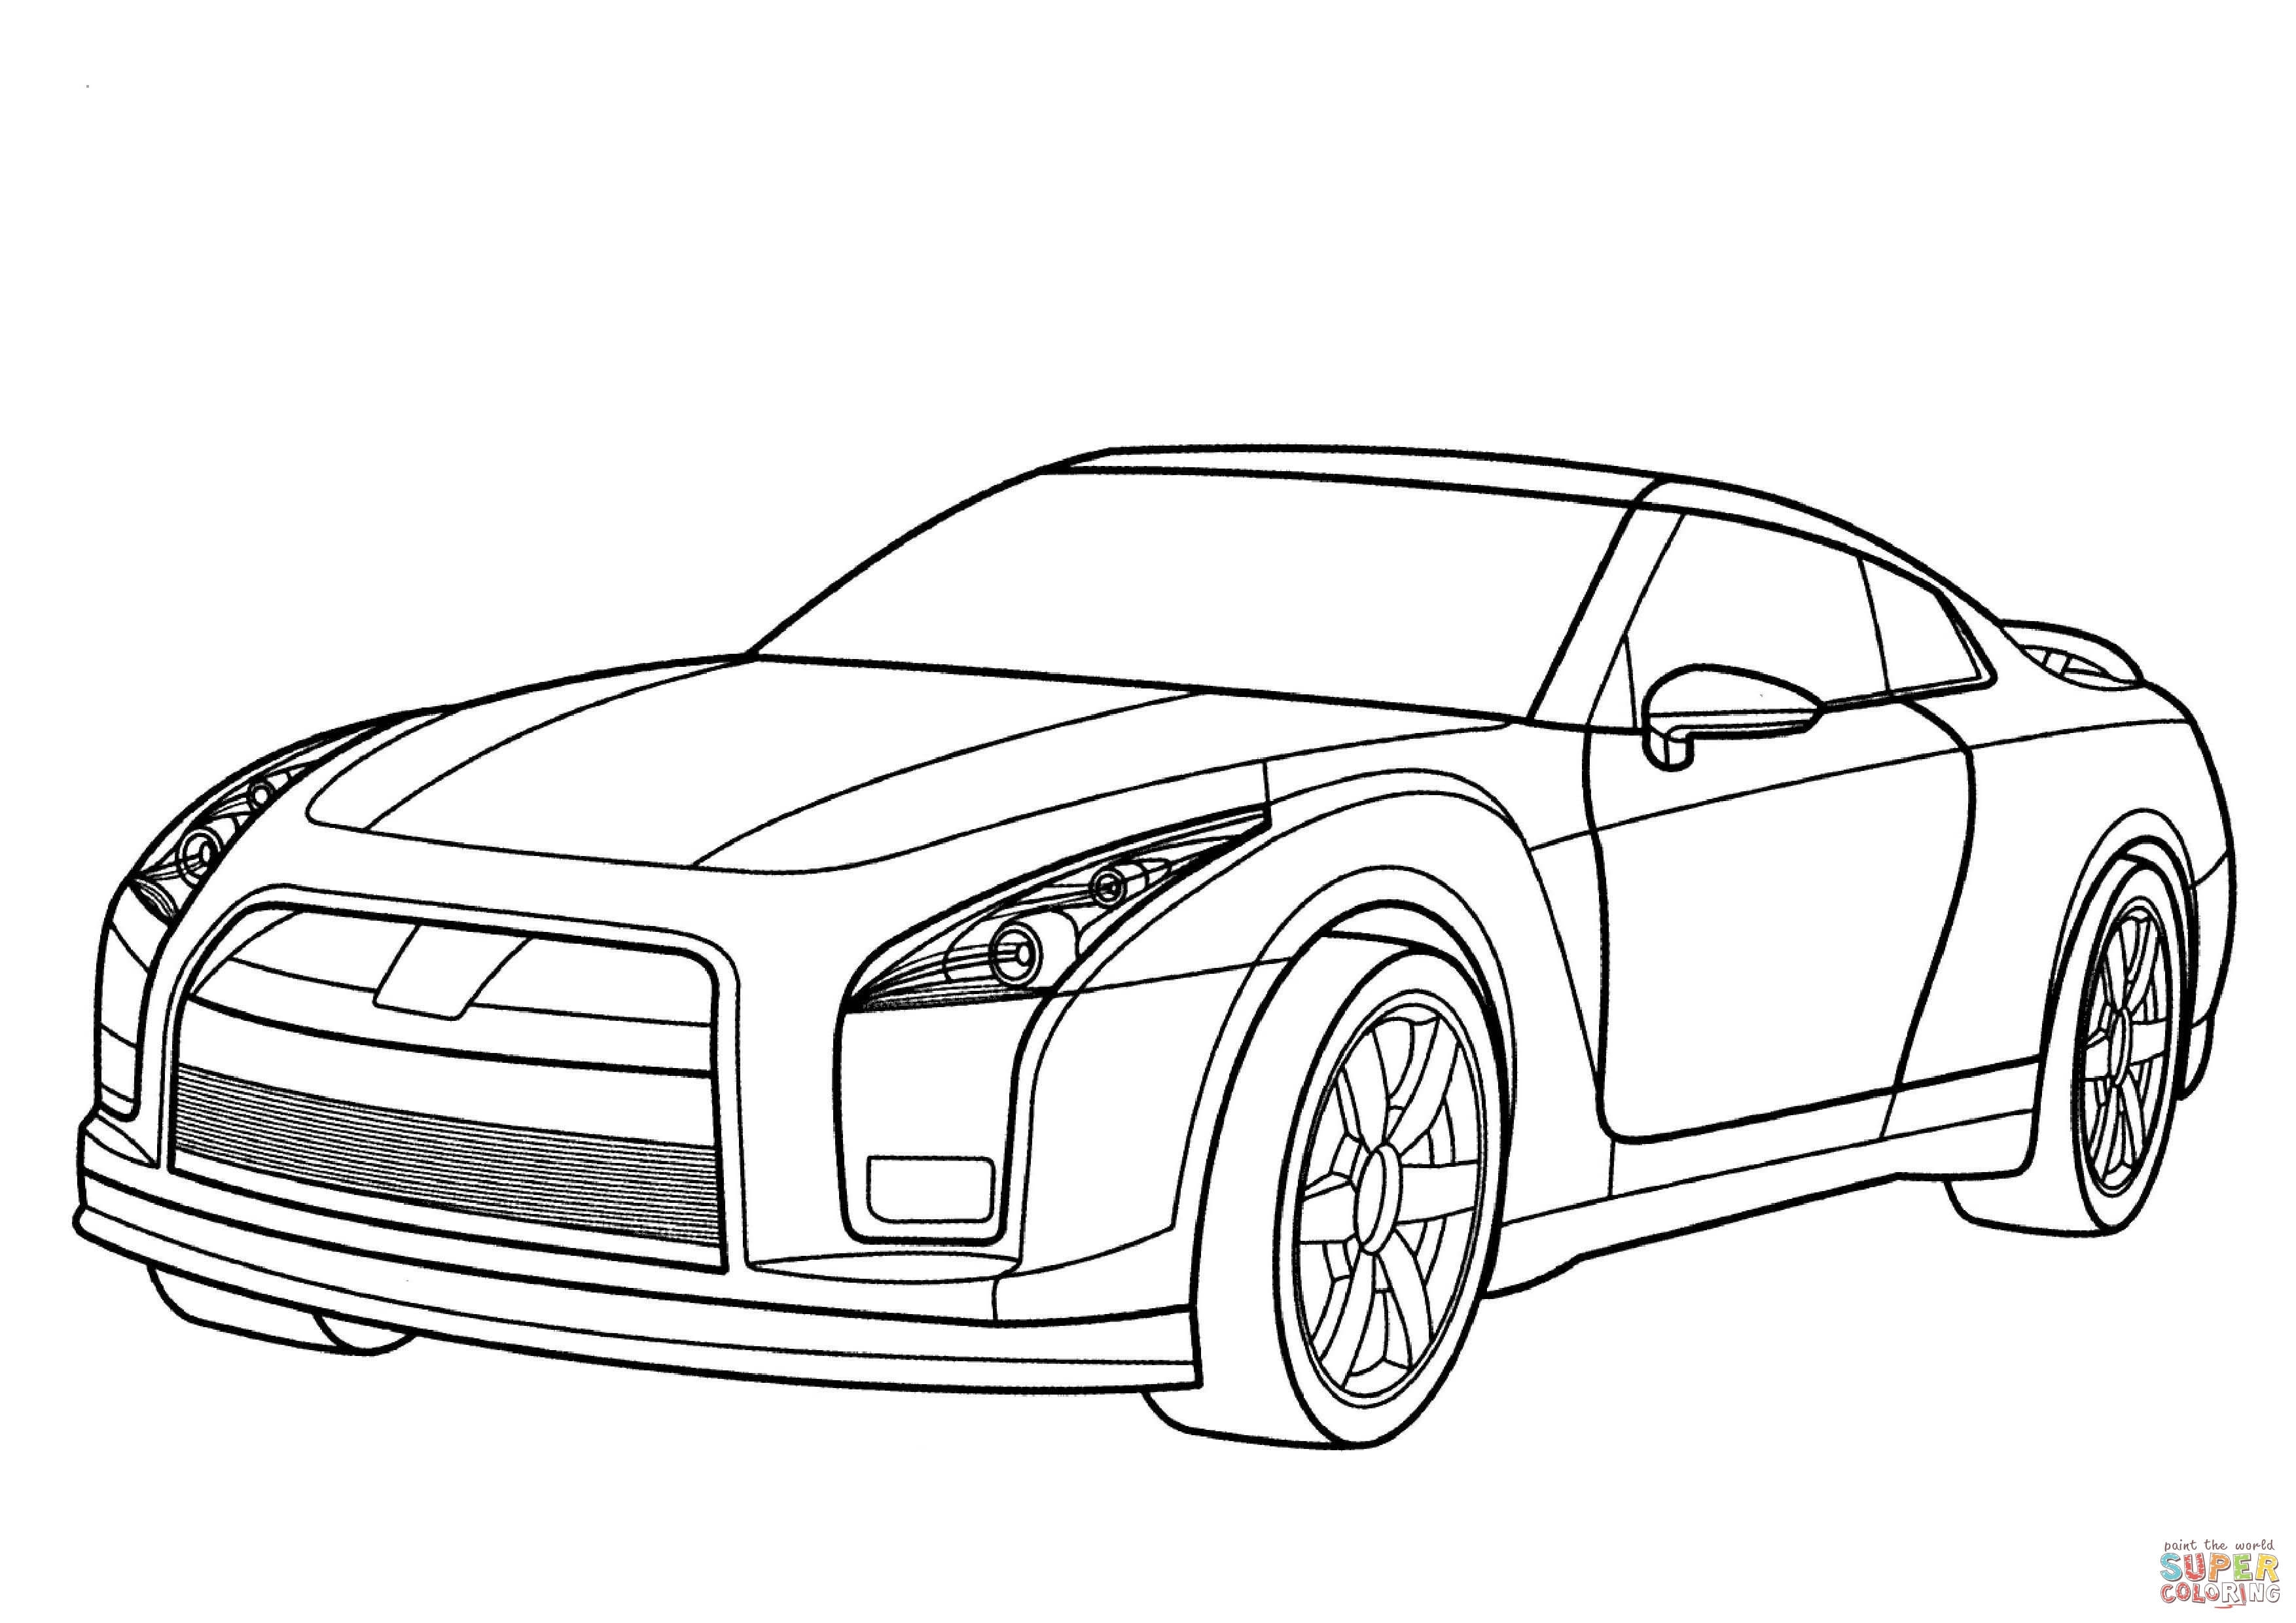 3508x2480 Gtr Coloring Pages Selection Free Coloring Pages